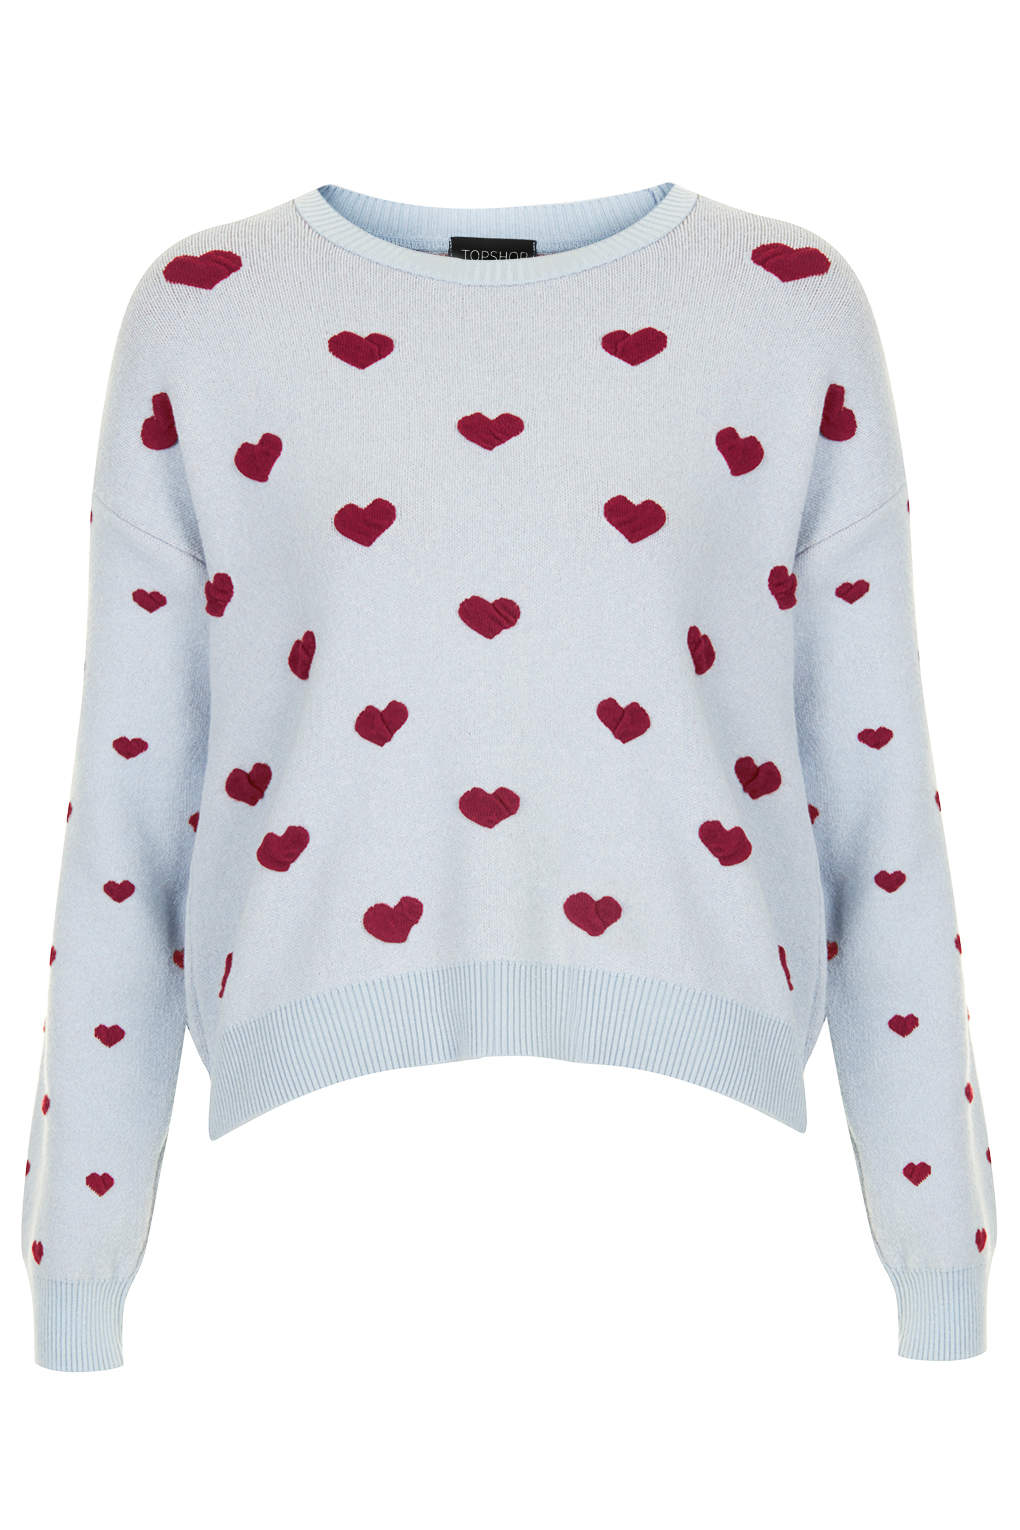 Hearts Motif Jumper - Knitwear - Clothing